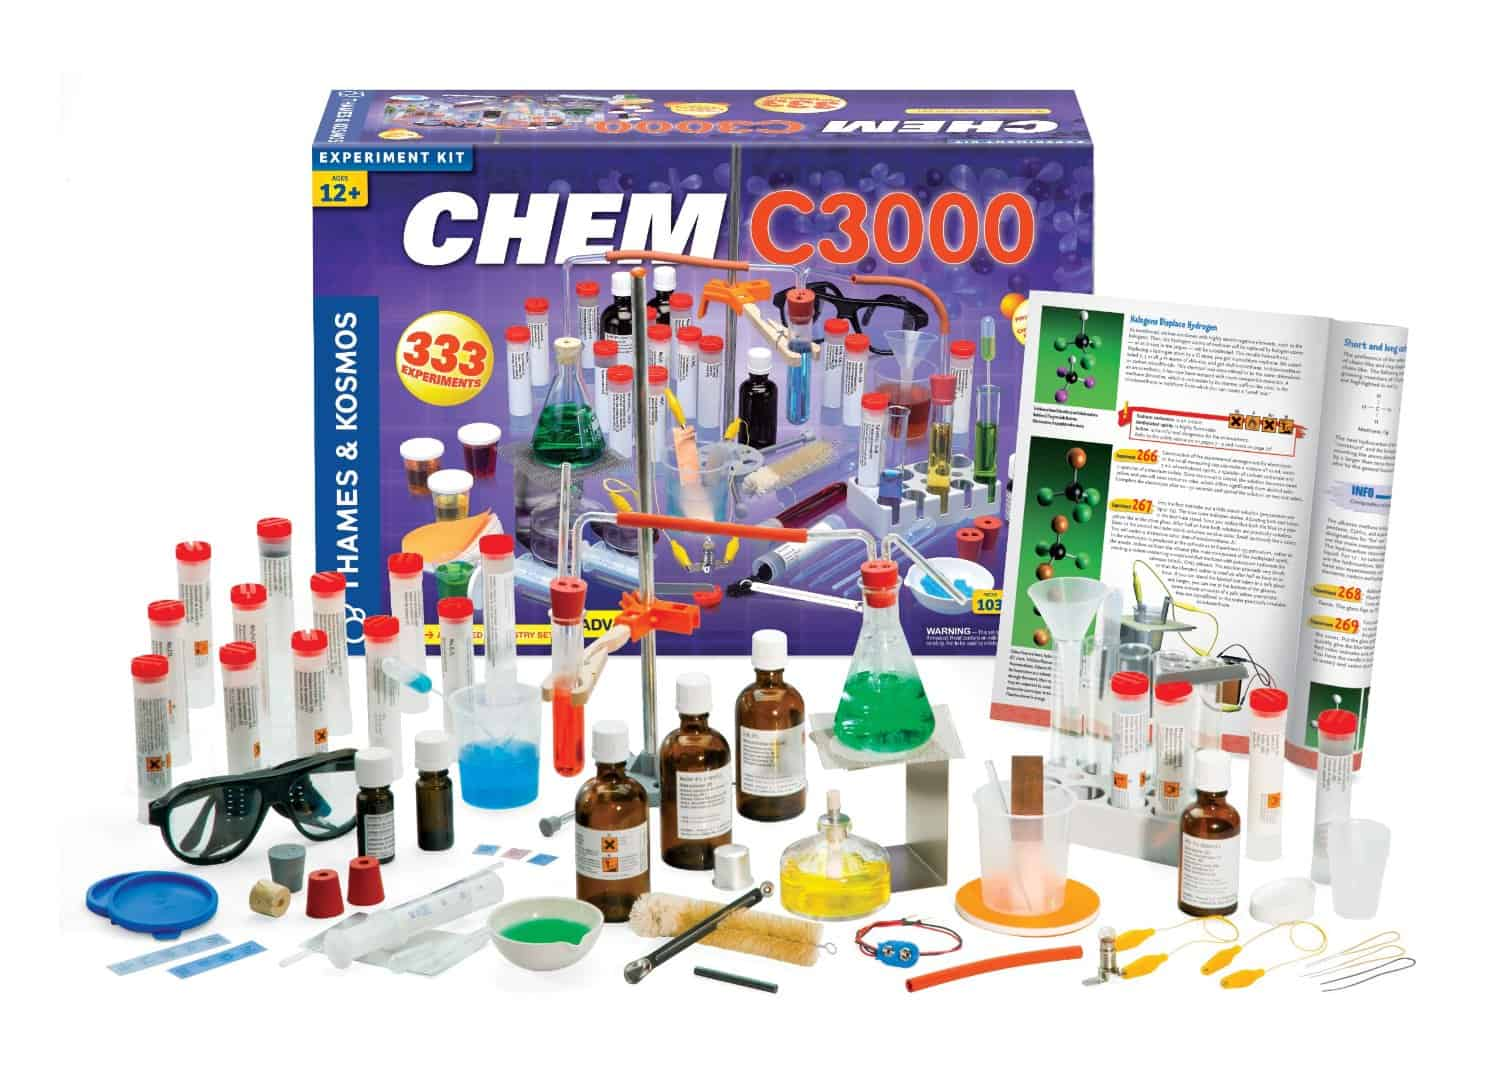 15 best science gifts for teen boys ben and me best science gifts for teen boys chem c3000 chemistry kit solutioingenieria Gallery